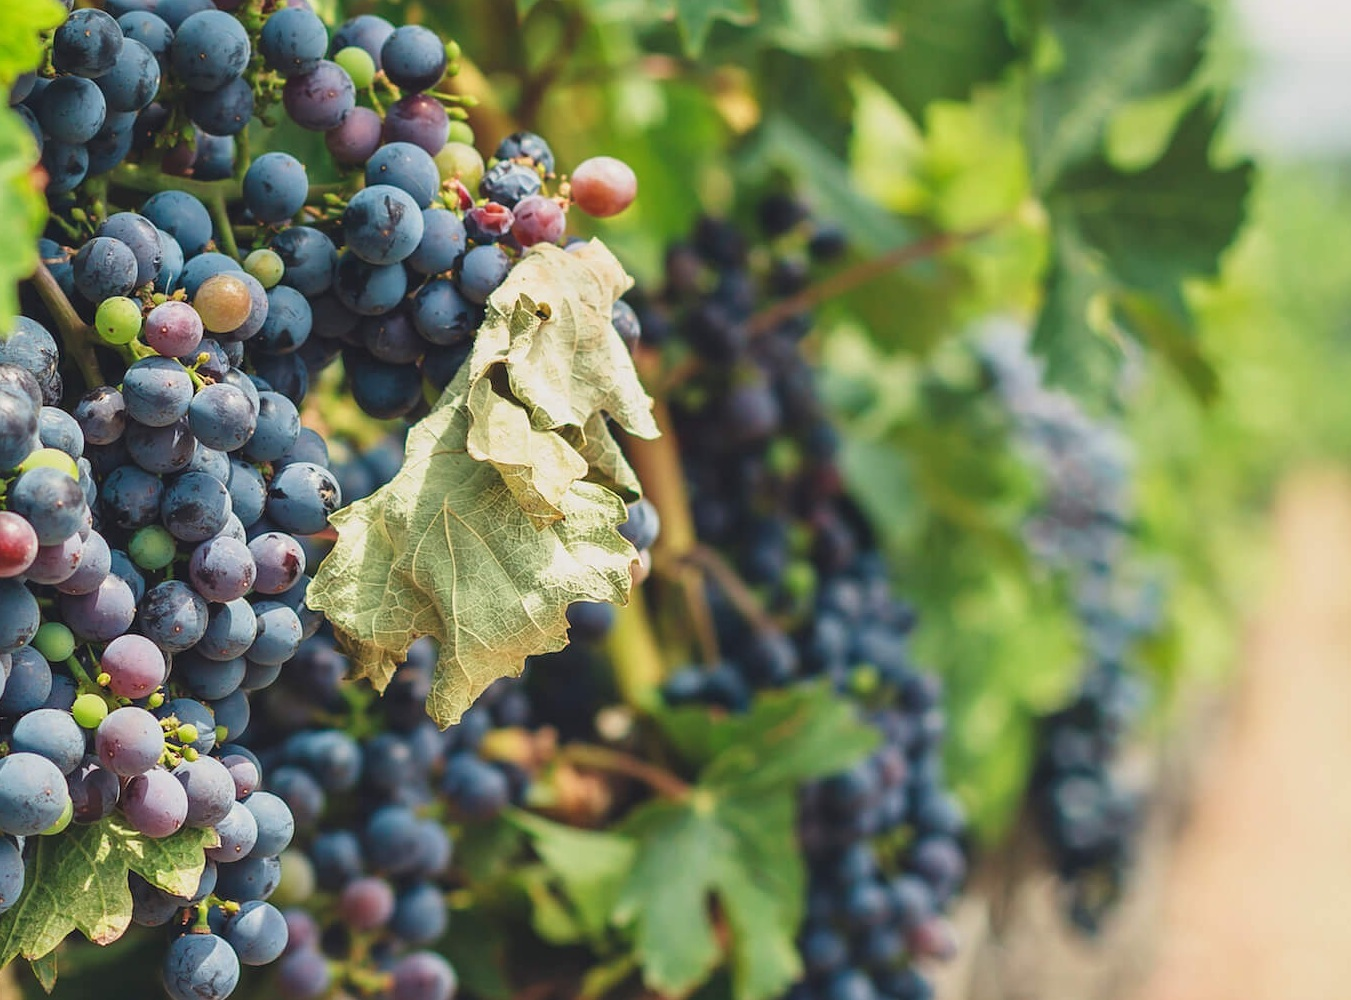 Winery%2BGrapes%2BSustainable%2BWine%2Bmaking%2B%257C%2BEpic%2BWines%2BOrganic%2BSustainable.jpg